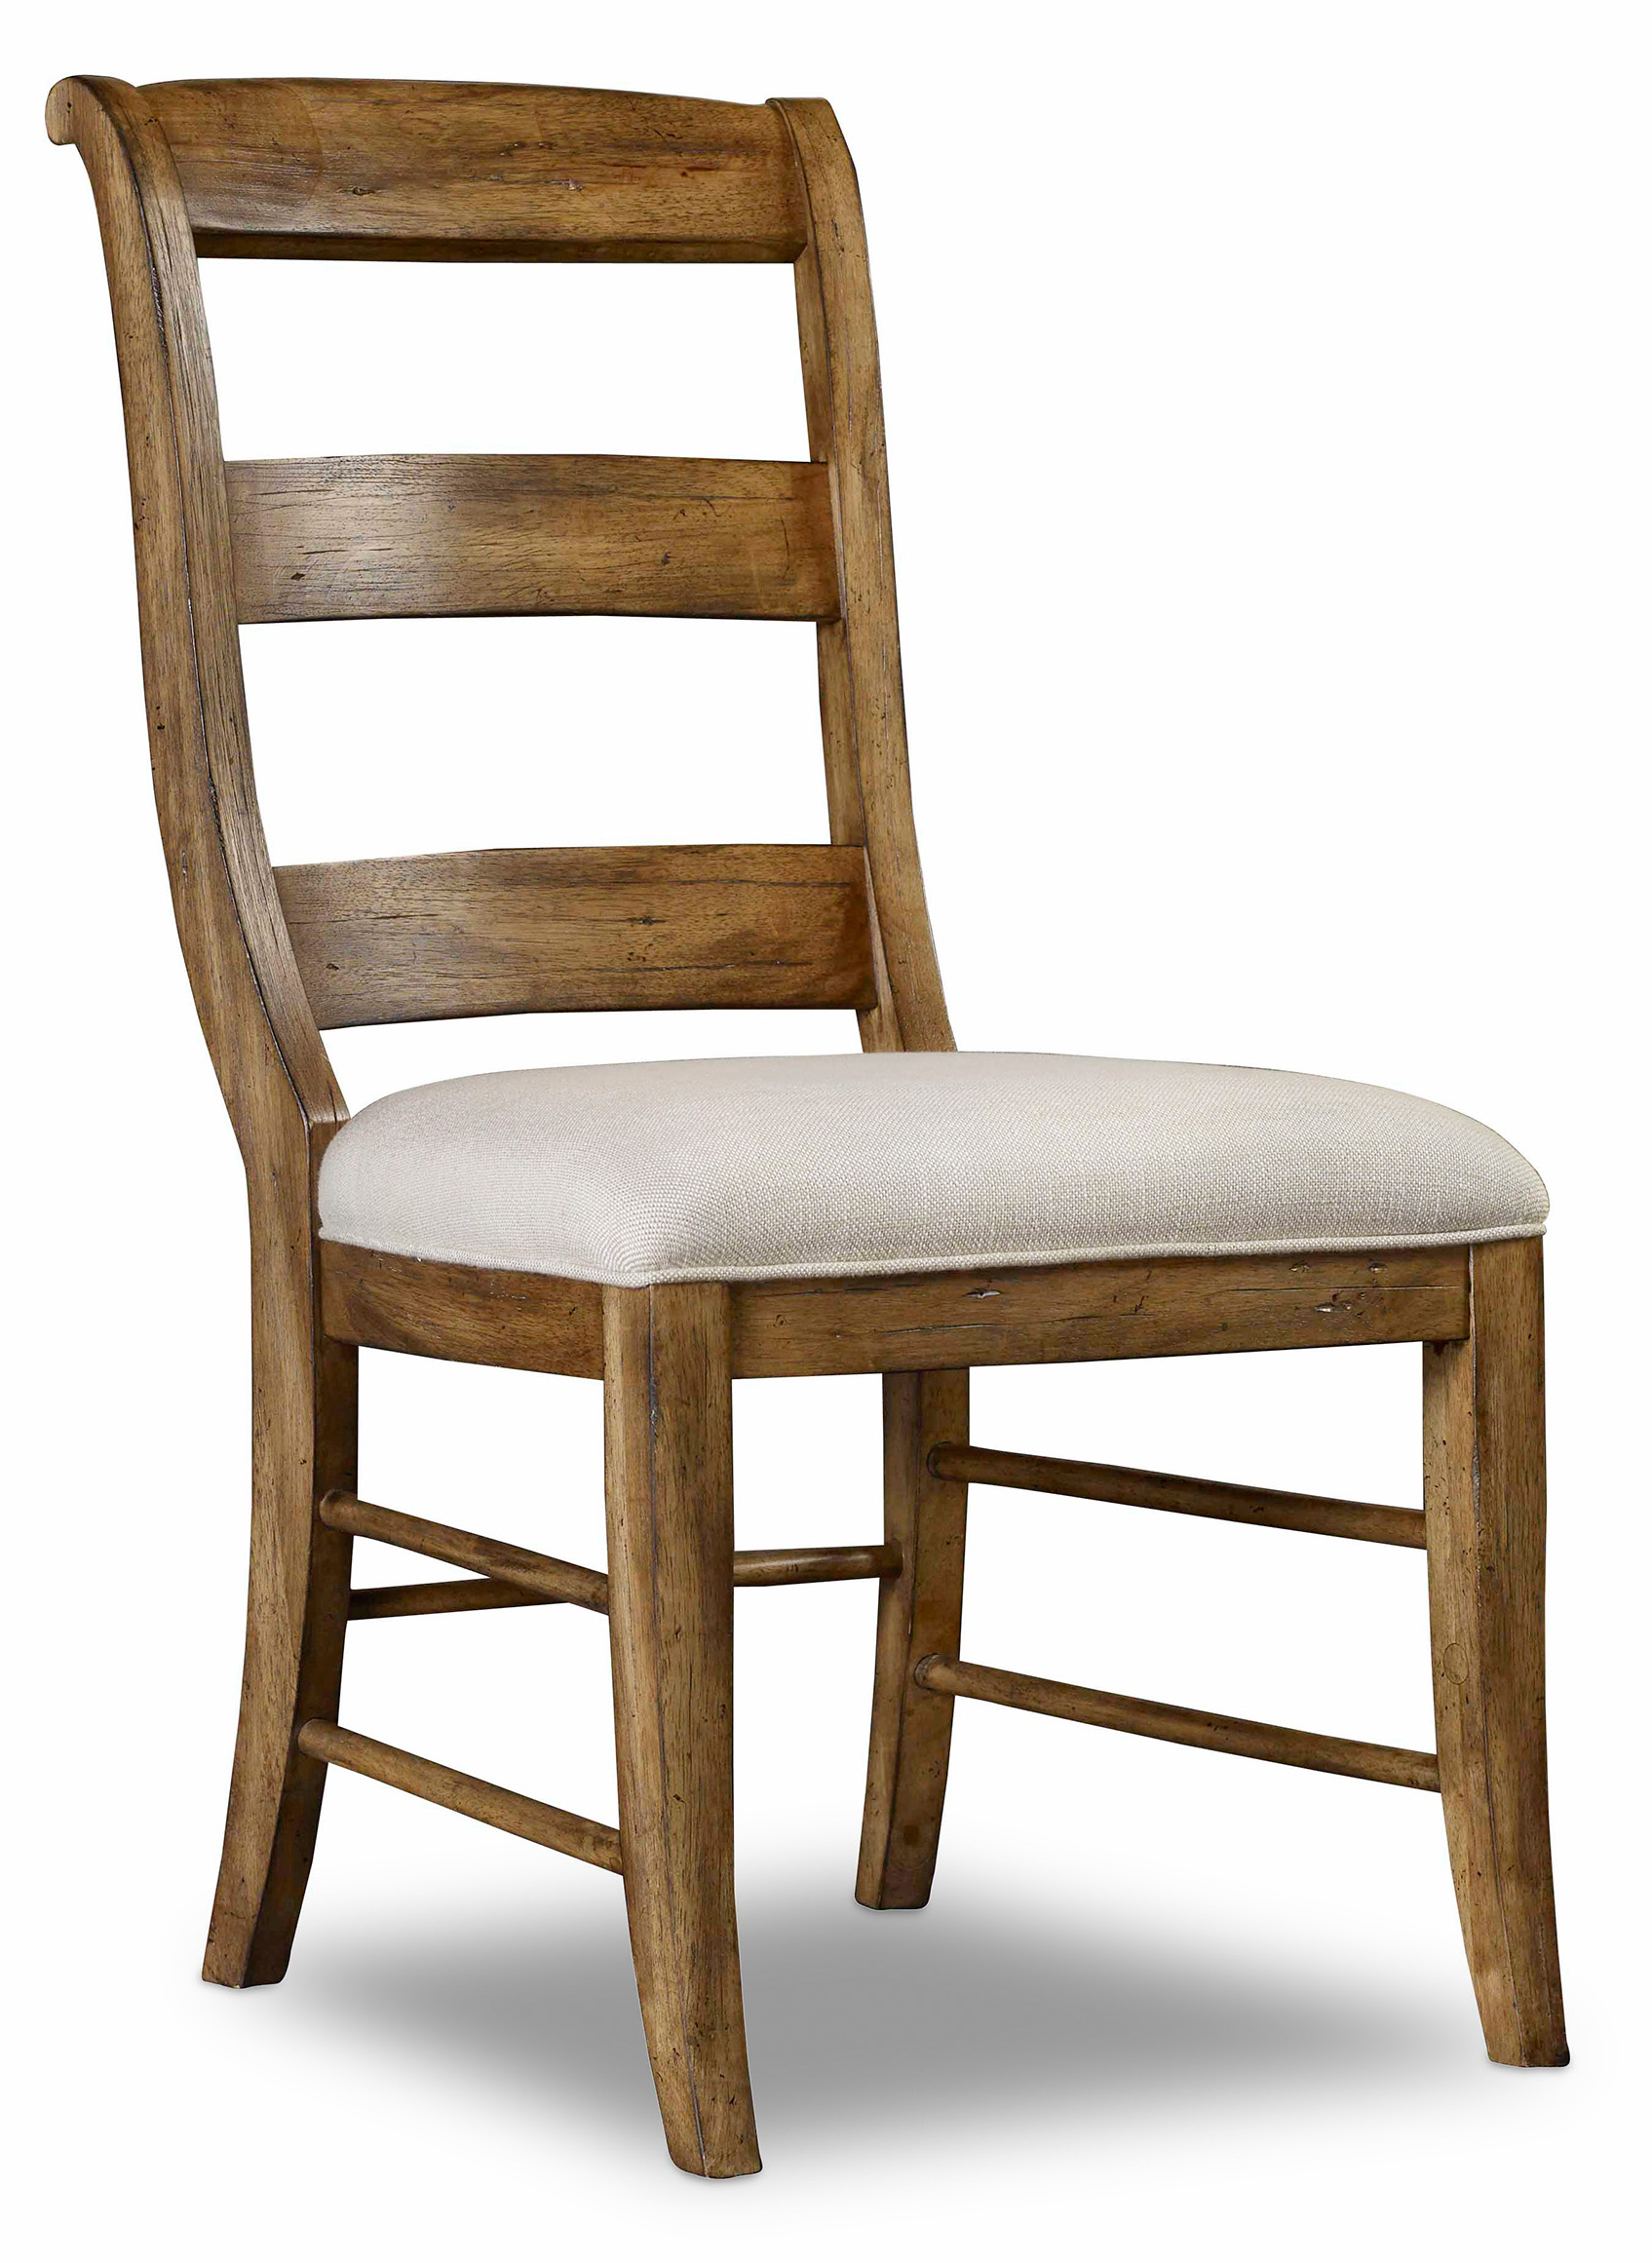 Hamilton Home Sentinel: Toffee Ladderback Side Chair - Item Number: 5447-75710-TOFFEE